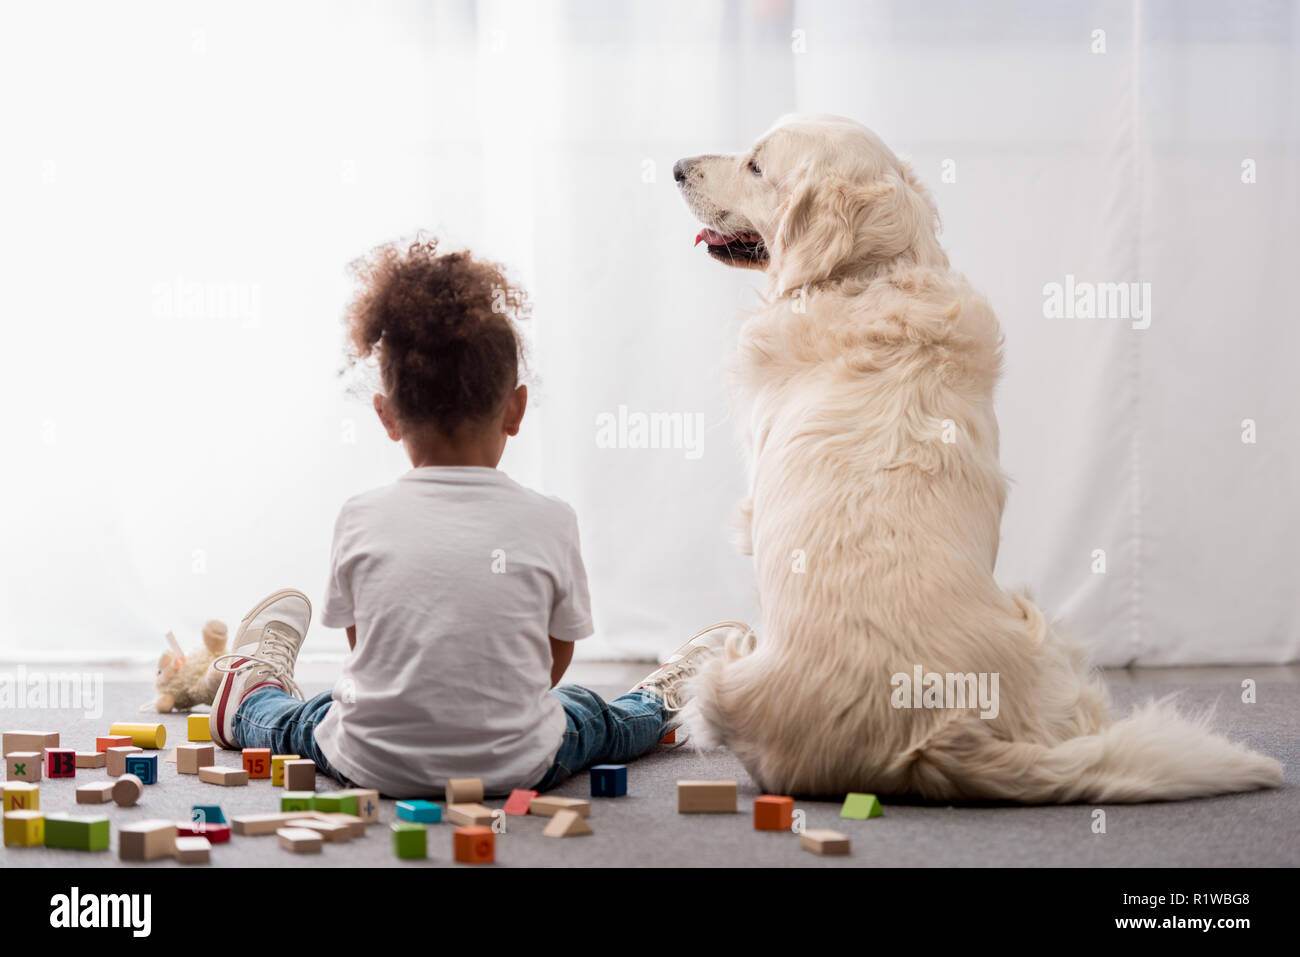 Back view of little kid in white t-shirts with happy dog surrounded by toy cubes - Stock Image